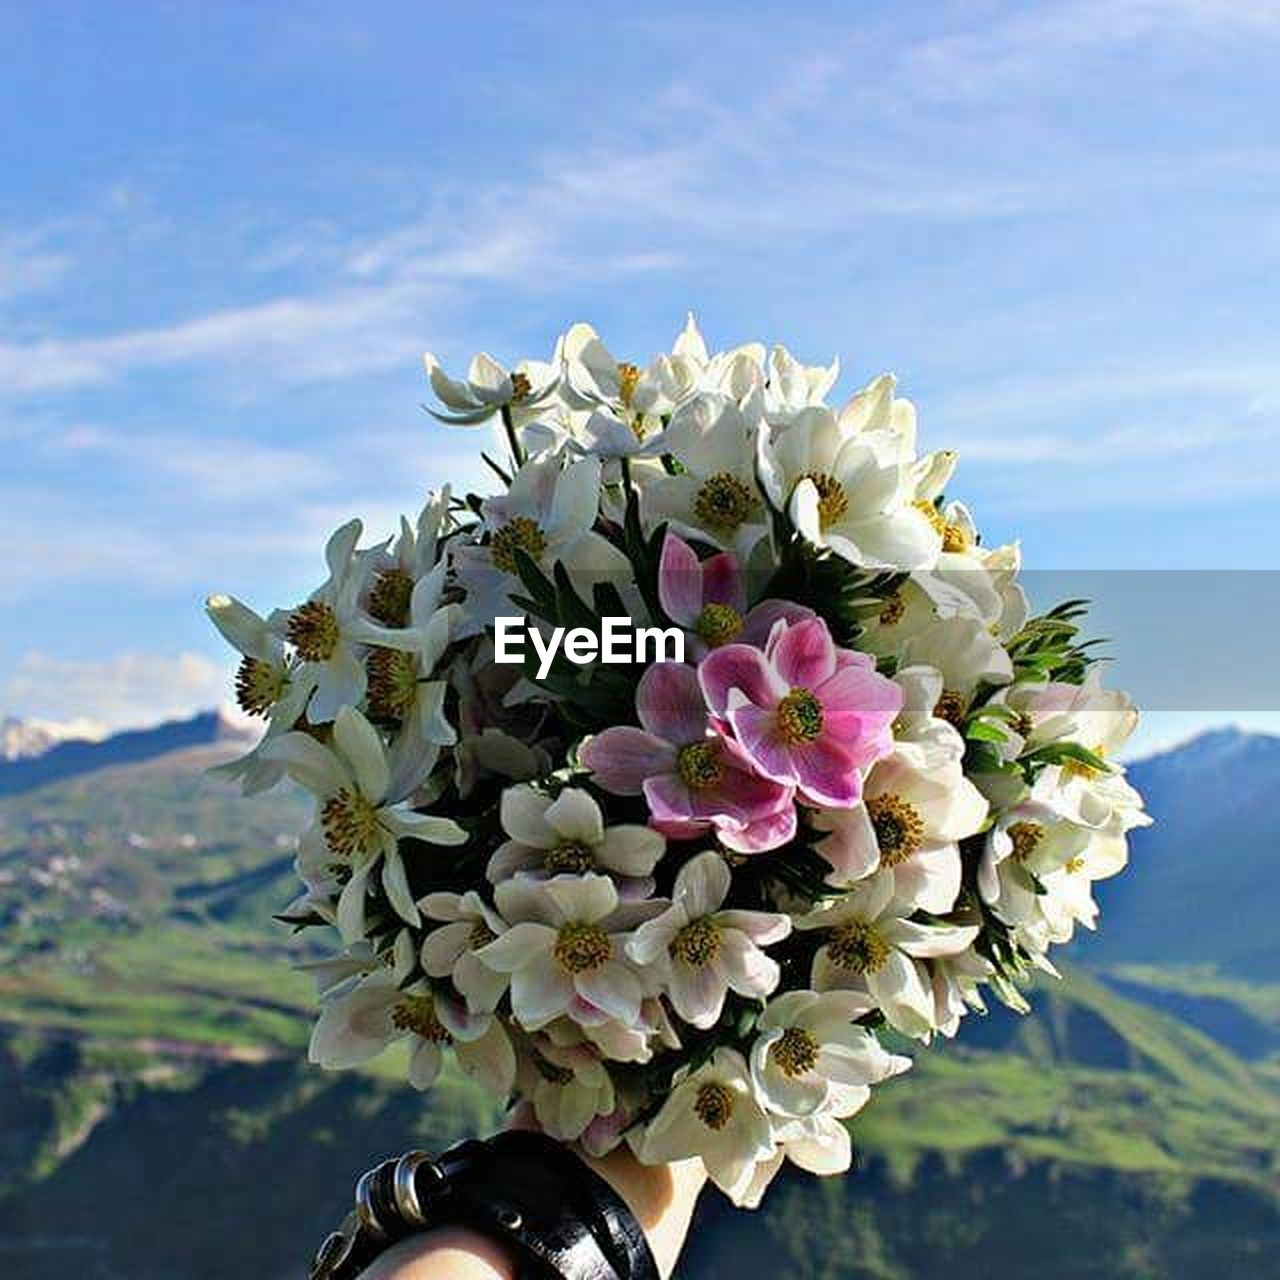 flower, petal, nature, fragility, beauty in nature, flower head, freshness, day, close-up, outdoors, sky, bouquet, mountain, cloud - sky, growth, blooming, no people